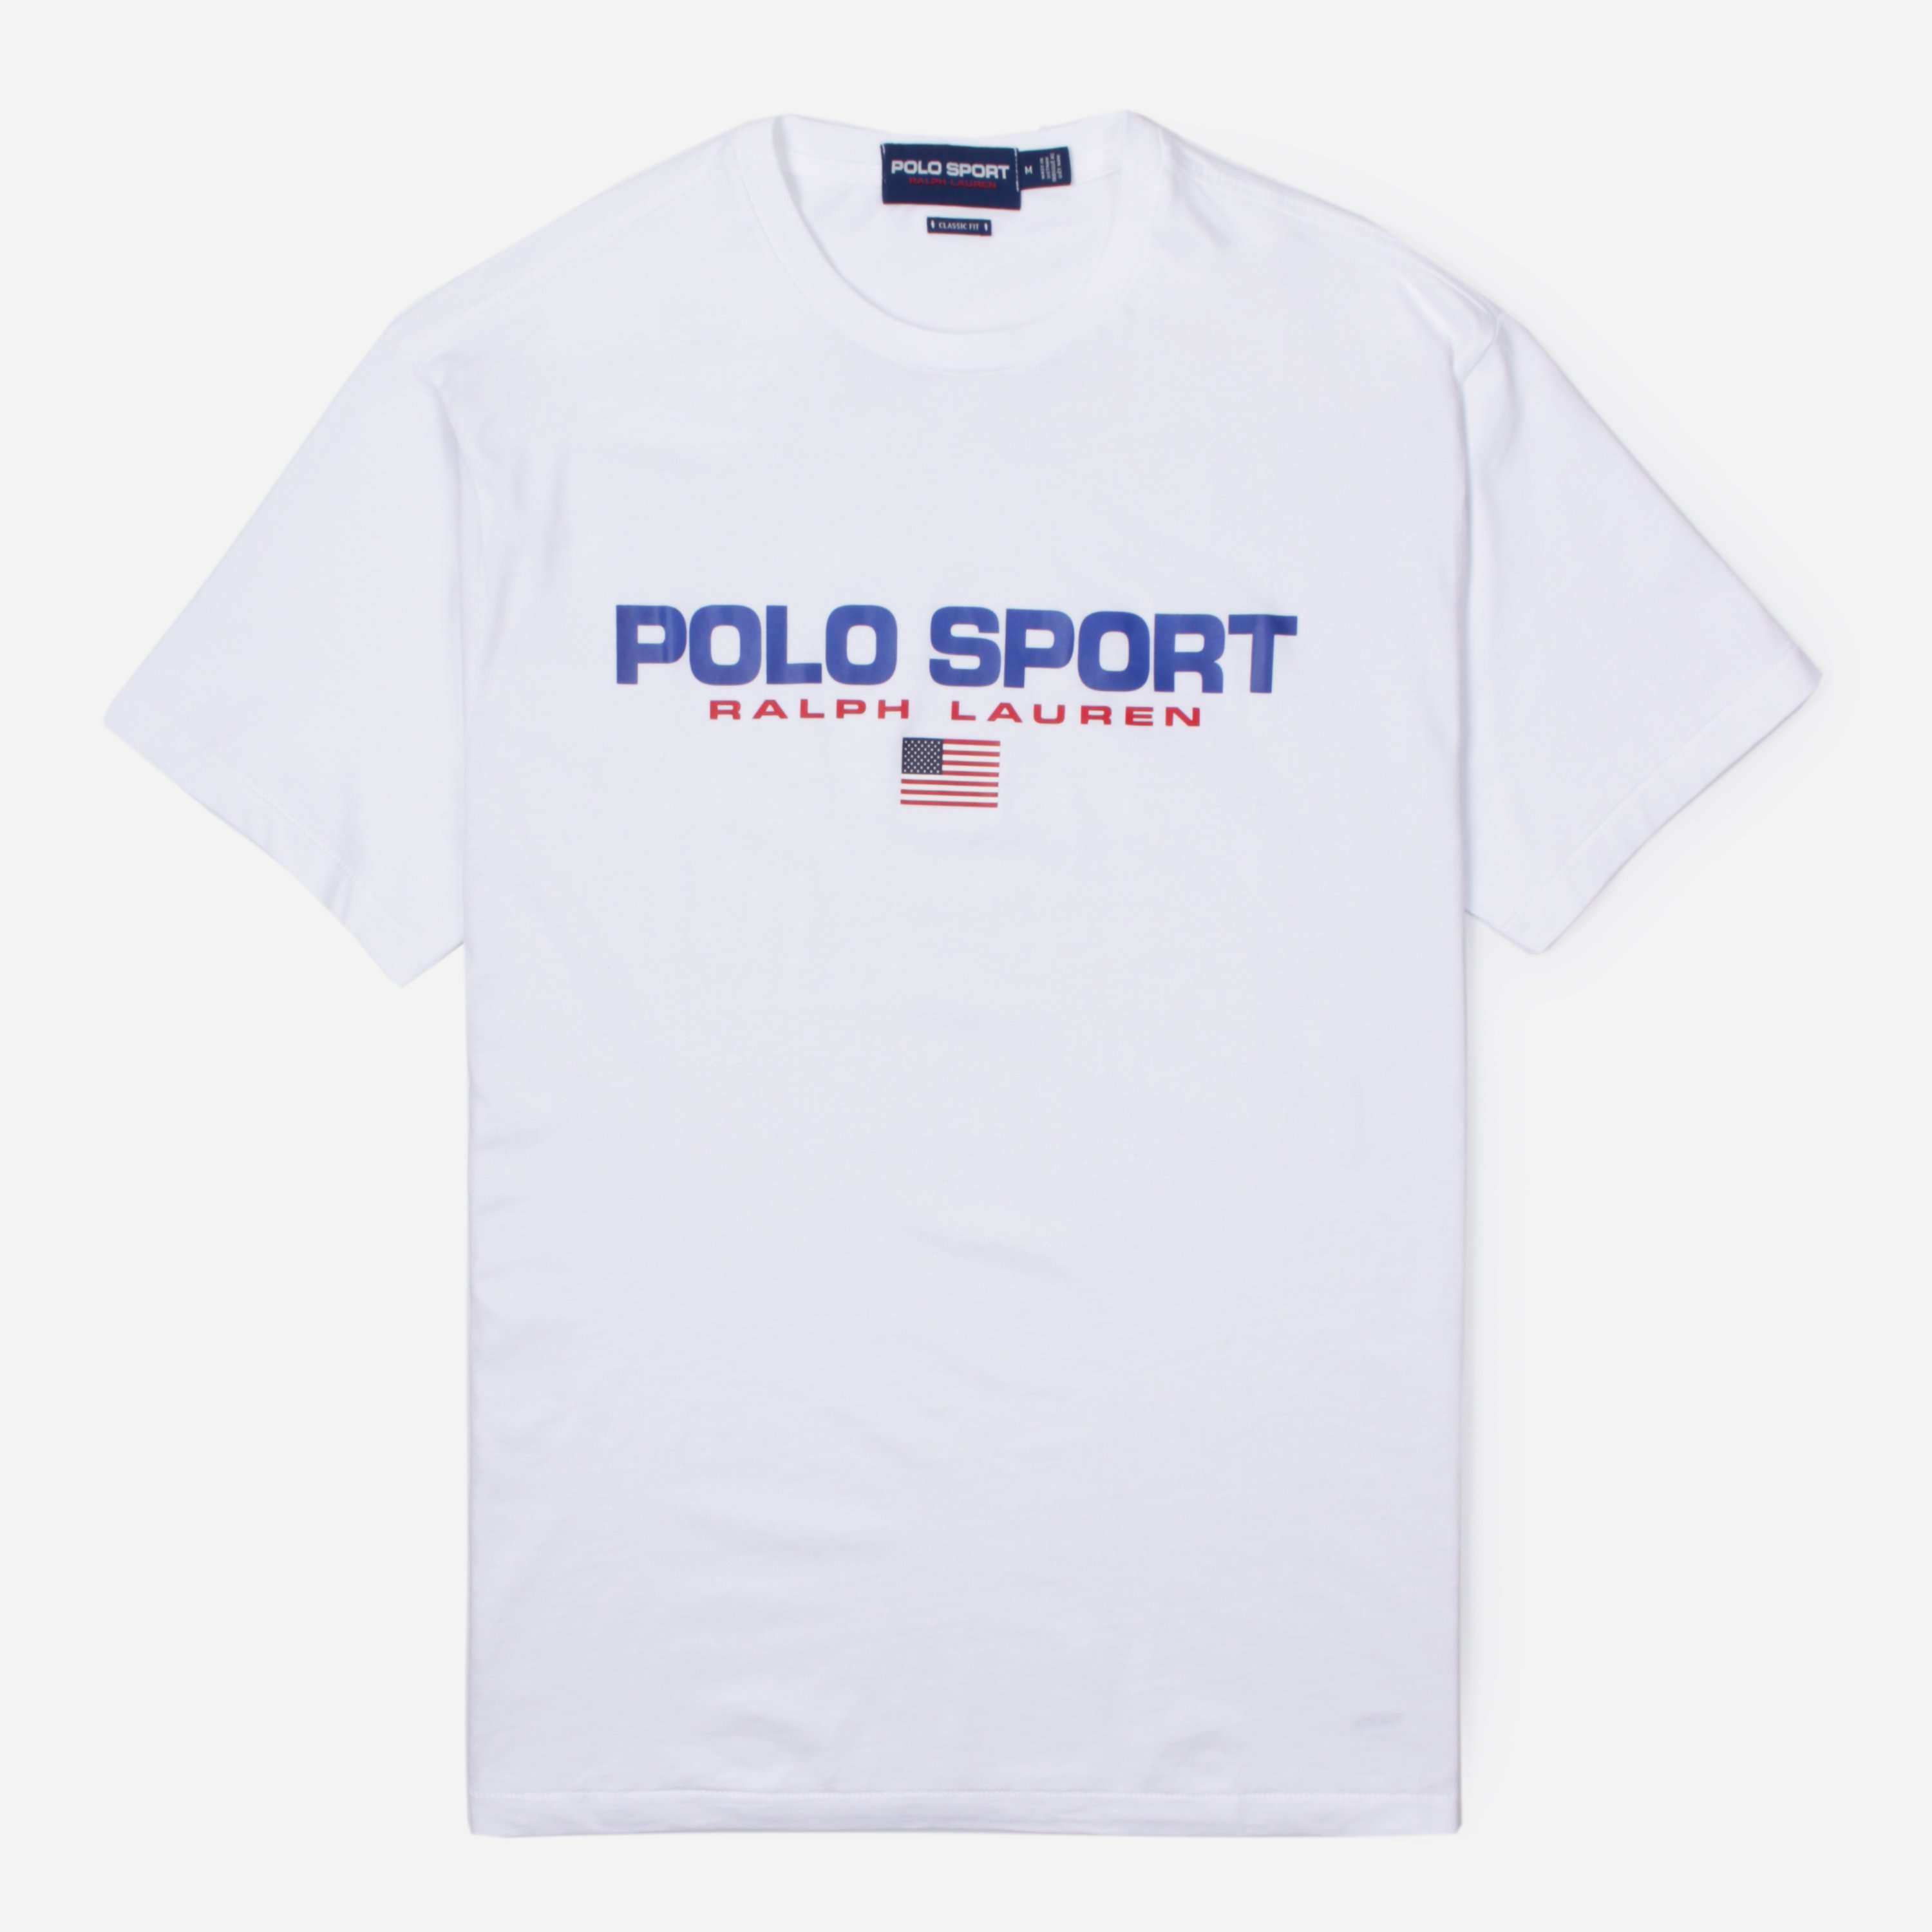 lowest price 0c3a3 a8725 Polo Ralph Lauren Logo Short Sleeve T-Shirt | The Hip Store